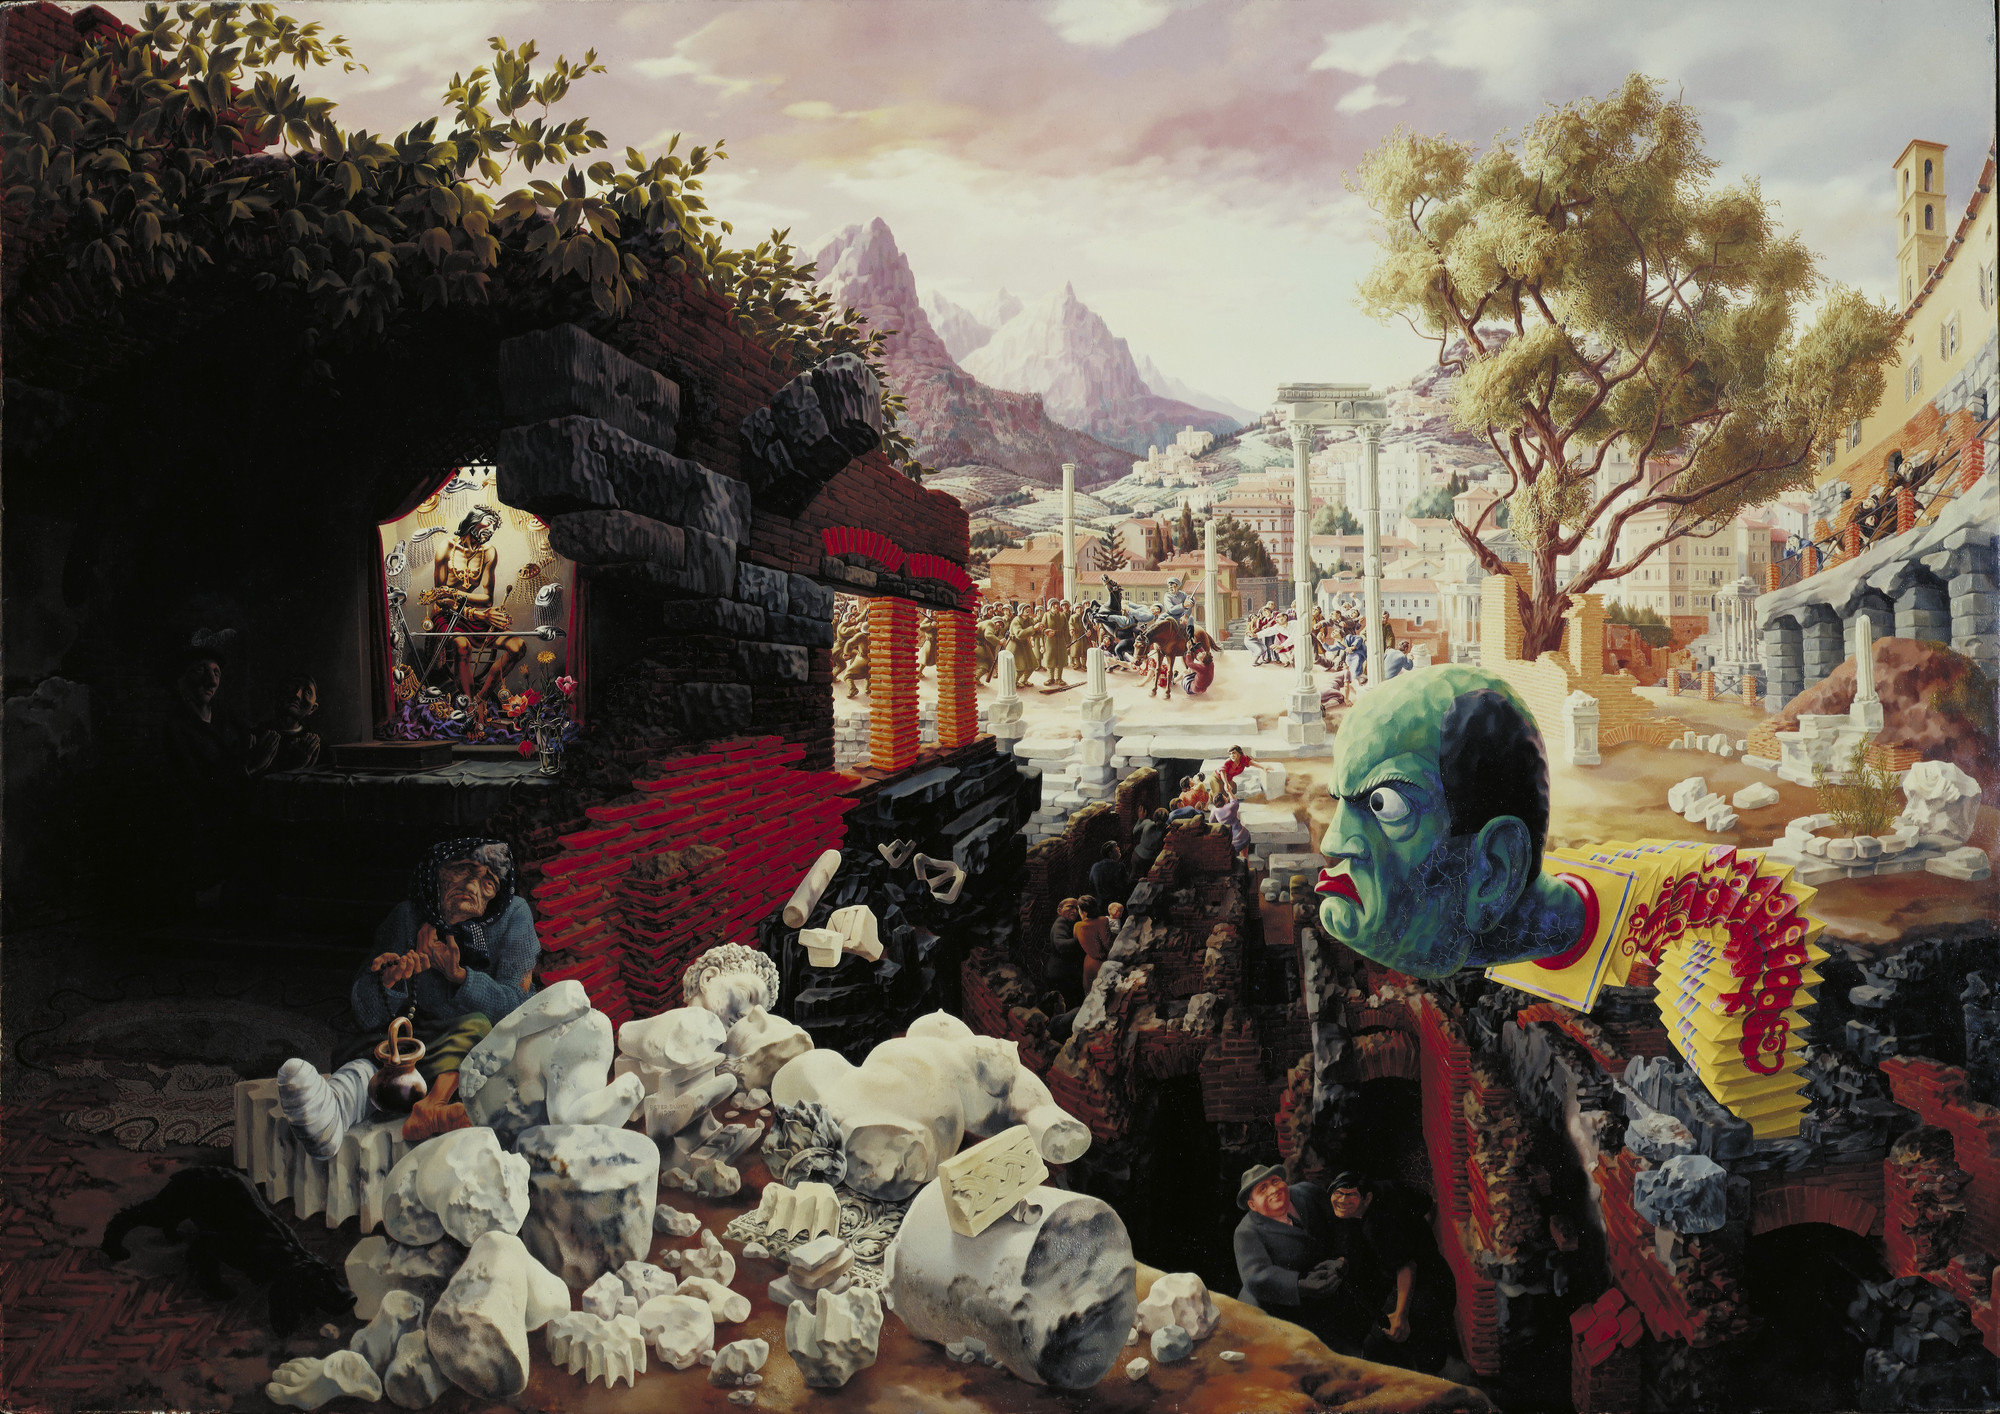 Peter Blume. The Eternal City. 1934-37 (dated on painting 1937)